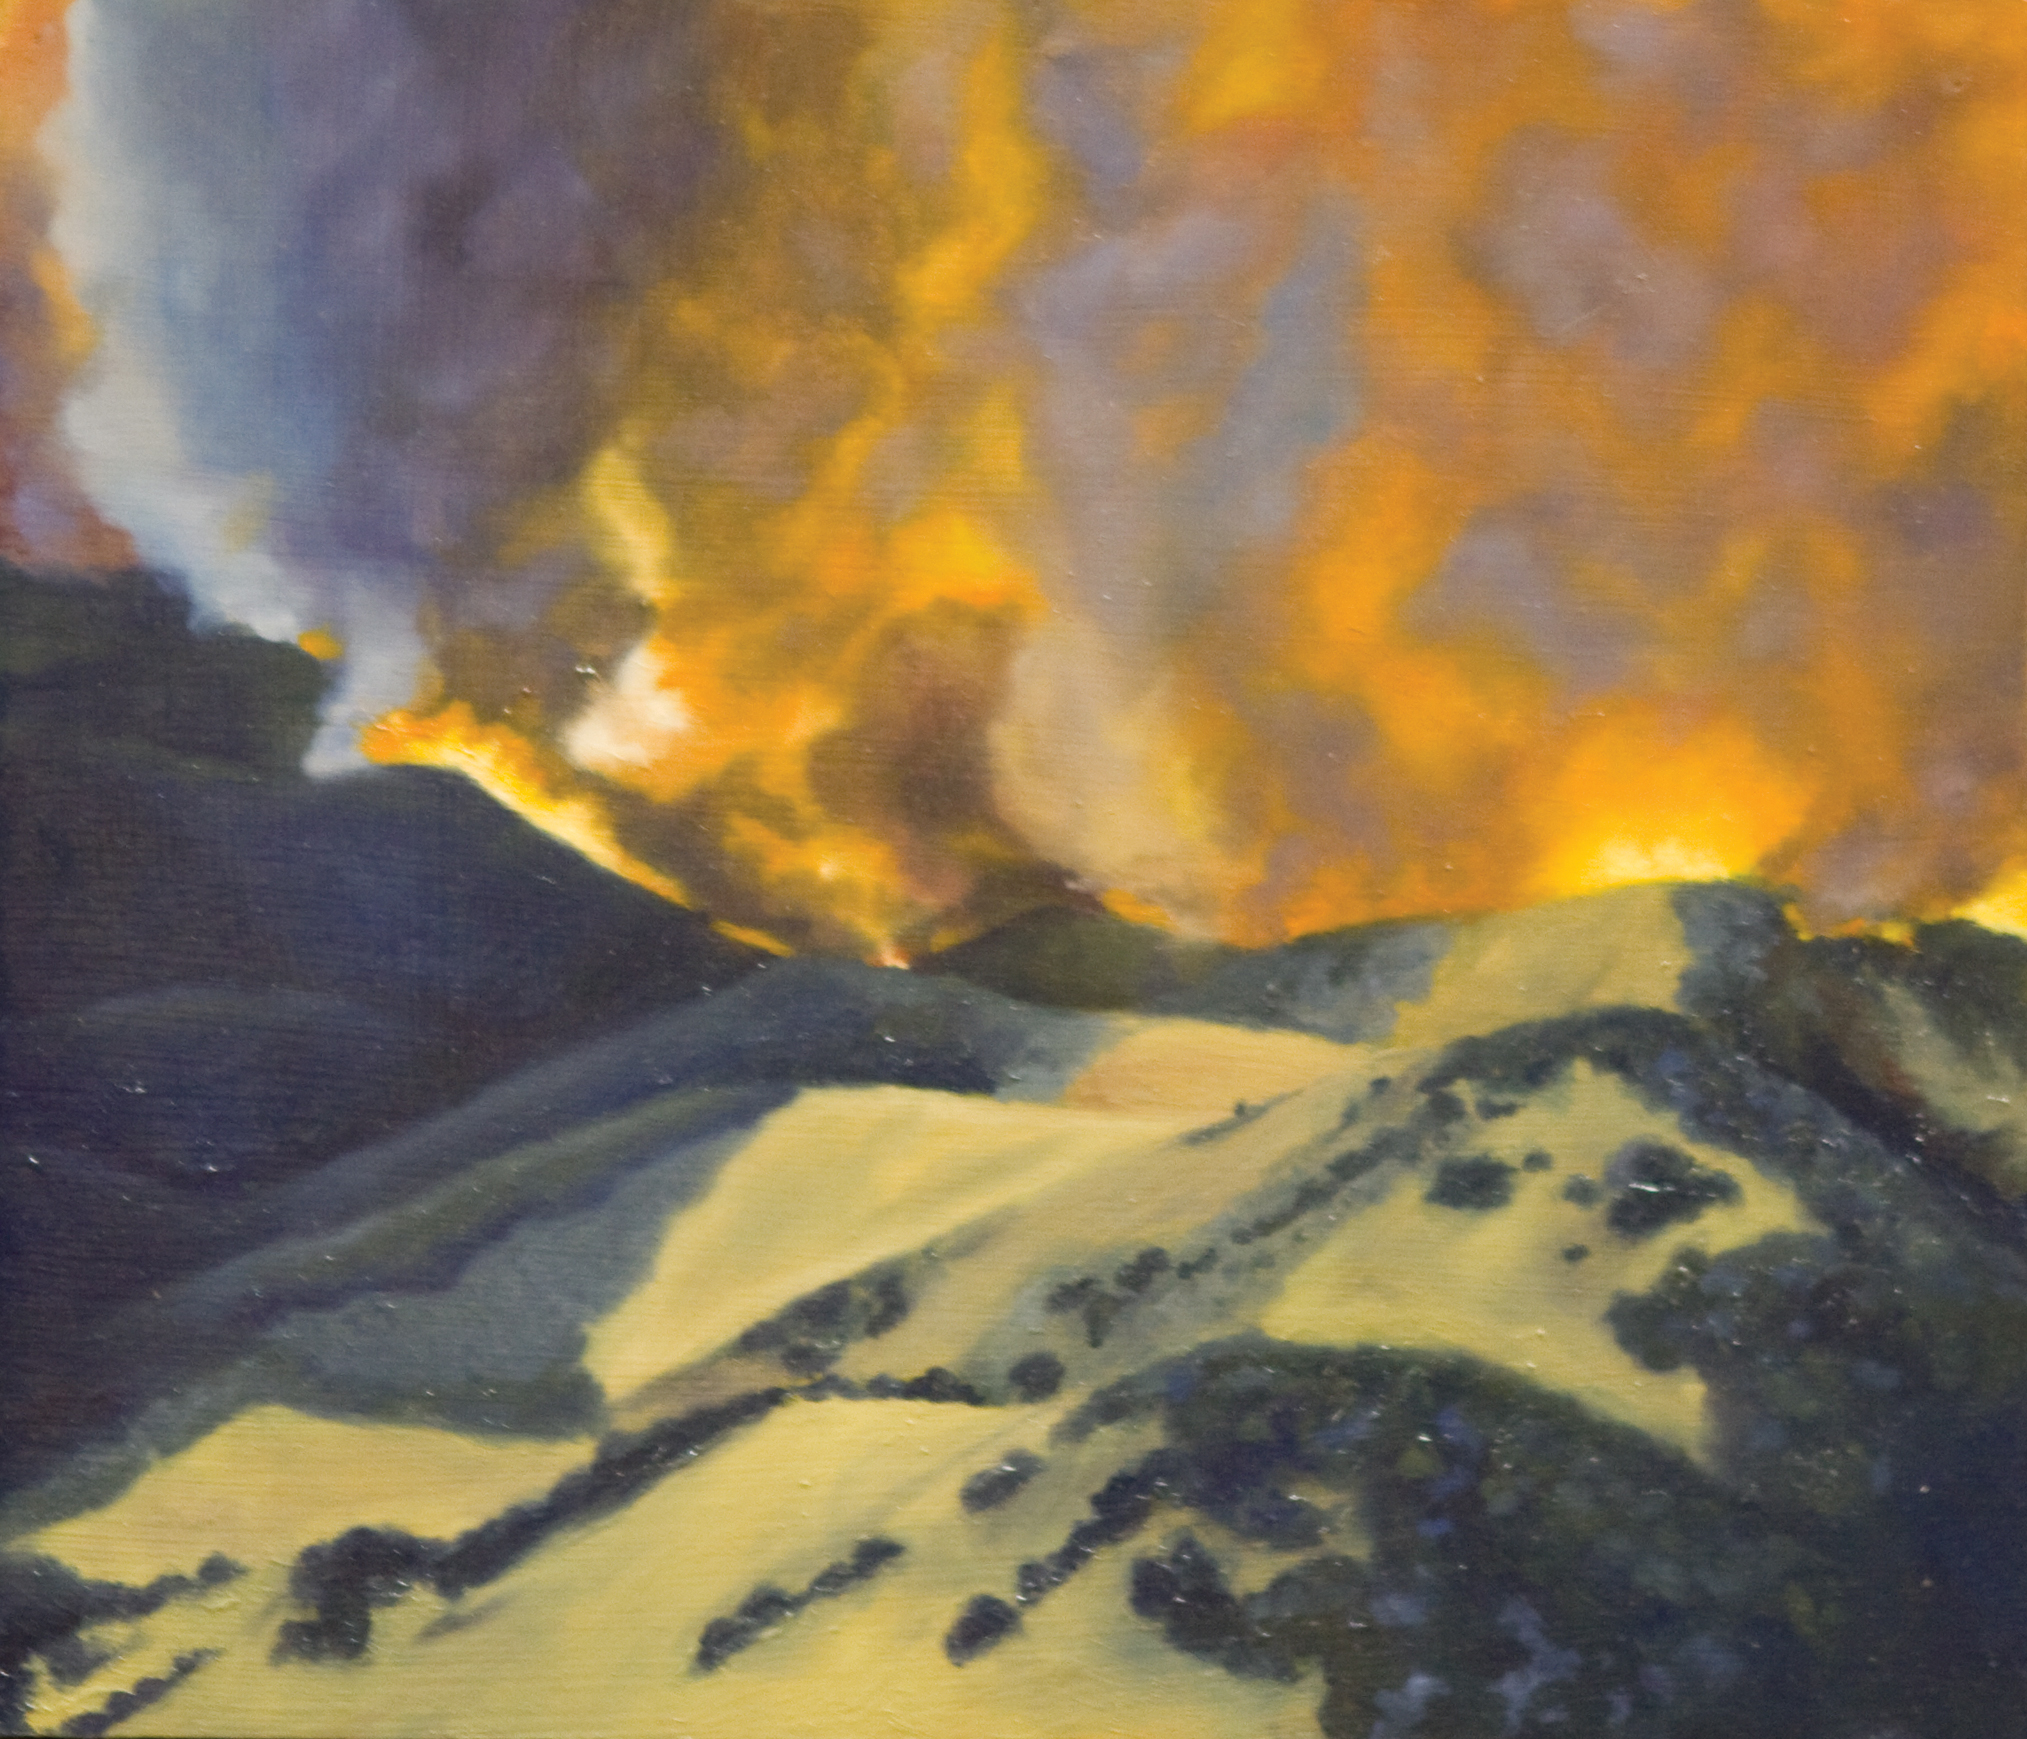 The Hills Are Burning 2010.jpg